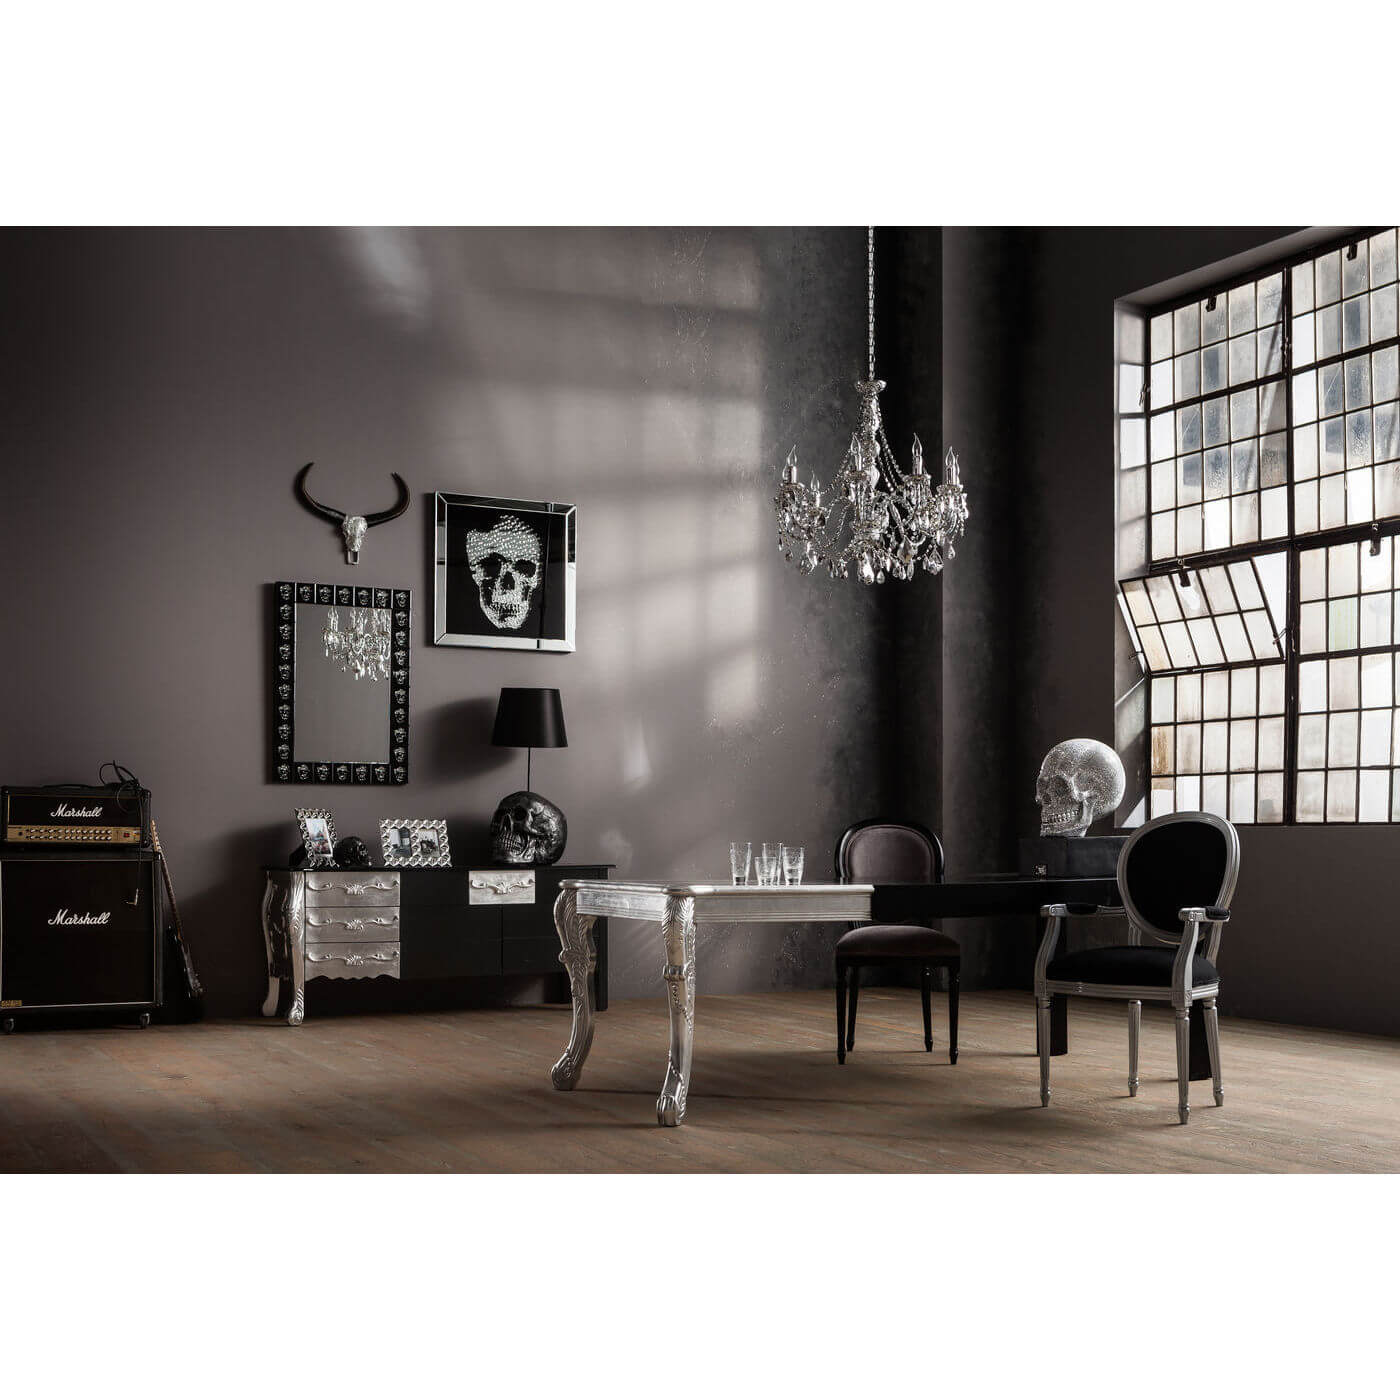 plakat rockstar 80x80cm cool til ungdomslejligheden. Black Bedroom Furniture Sets. Home Design Ideas